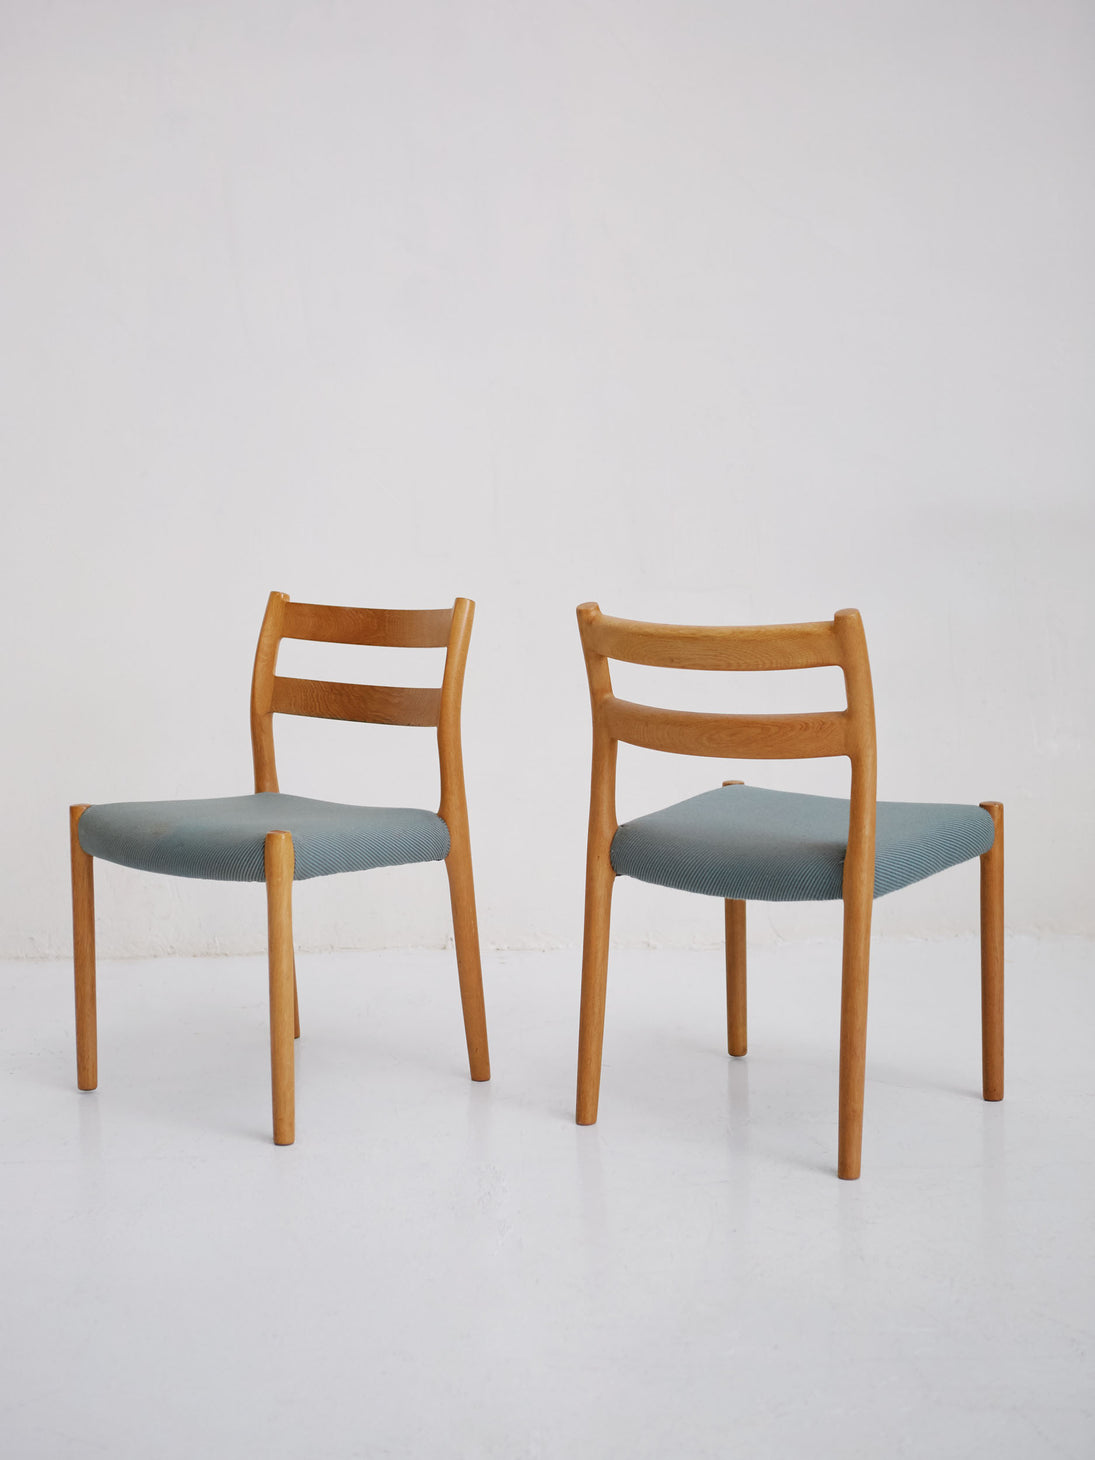 Set of N° 84 Chairs by Niels O. Møller for J.L. Møllers